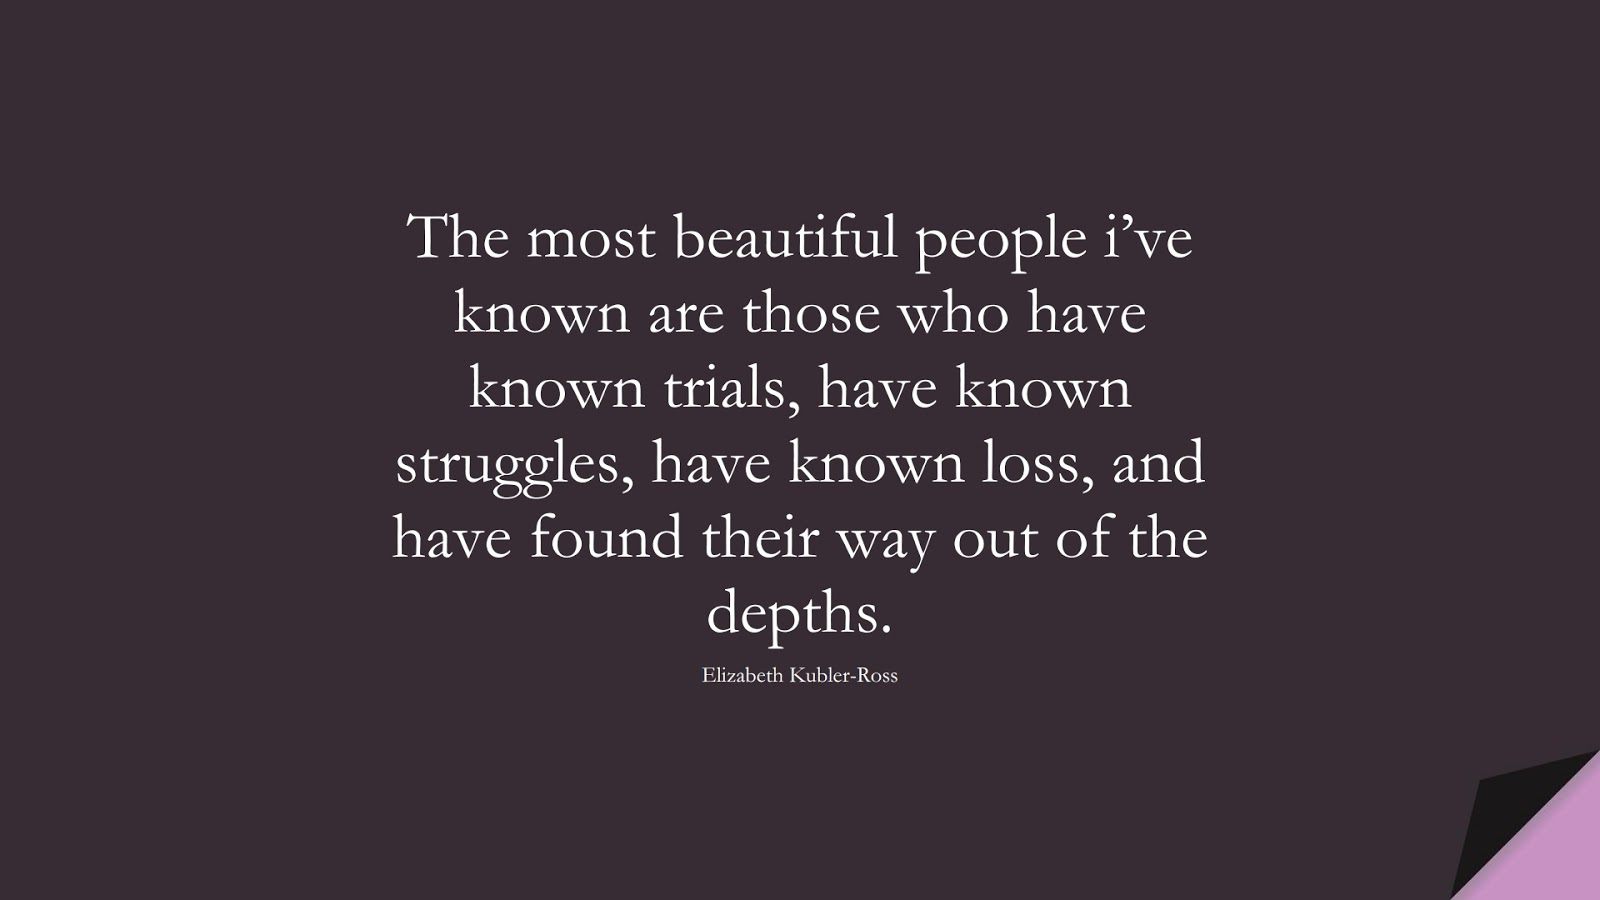 The most beautiful people i've known are those who have known trials, have known struggles, have known loss, and have found their way out of the depths. (Elizabeth Kubler-Ross);  #PositiveQuotes